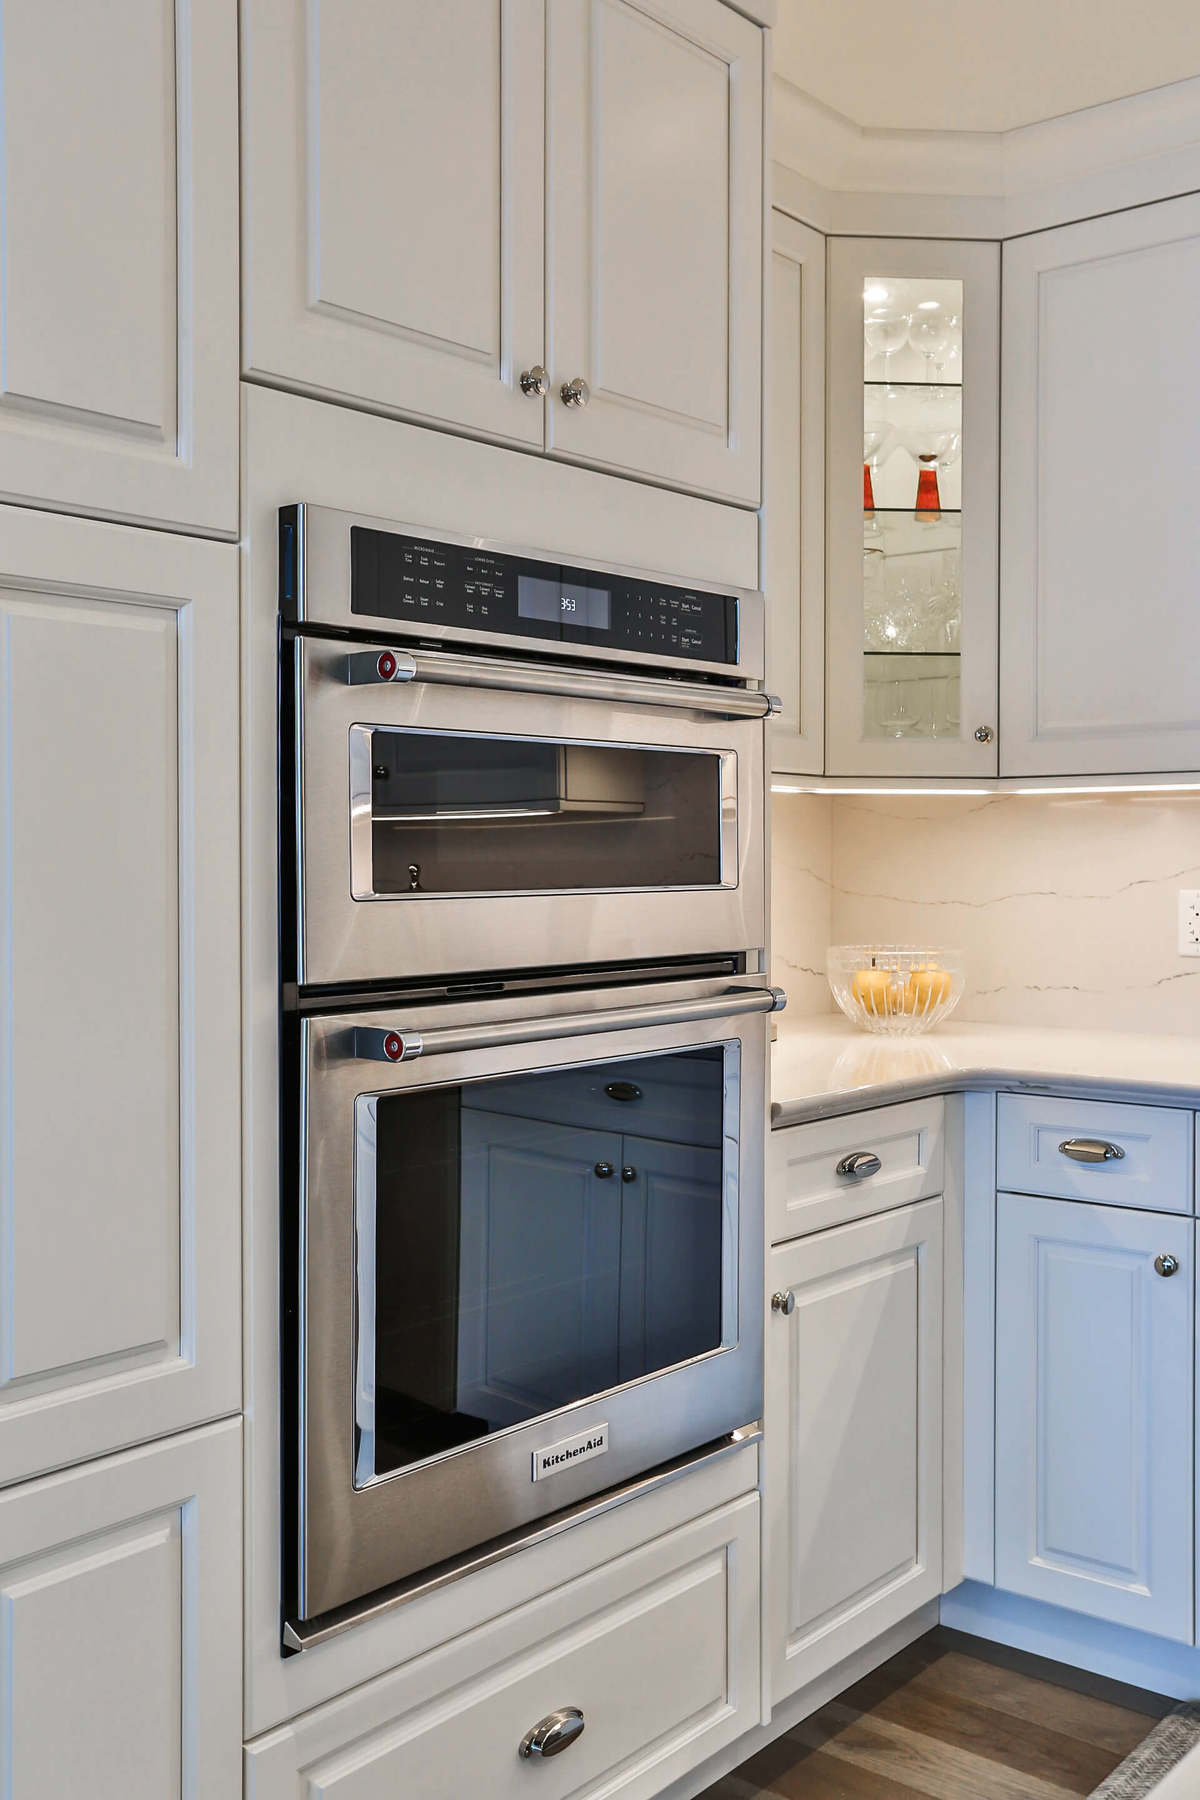 White kitchen design with white cupboards, stainless steel appliances, generous storage and hardwood floors.